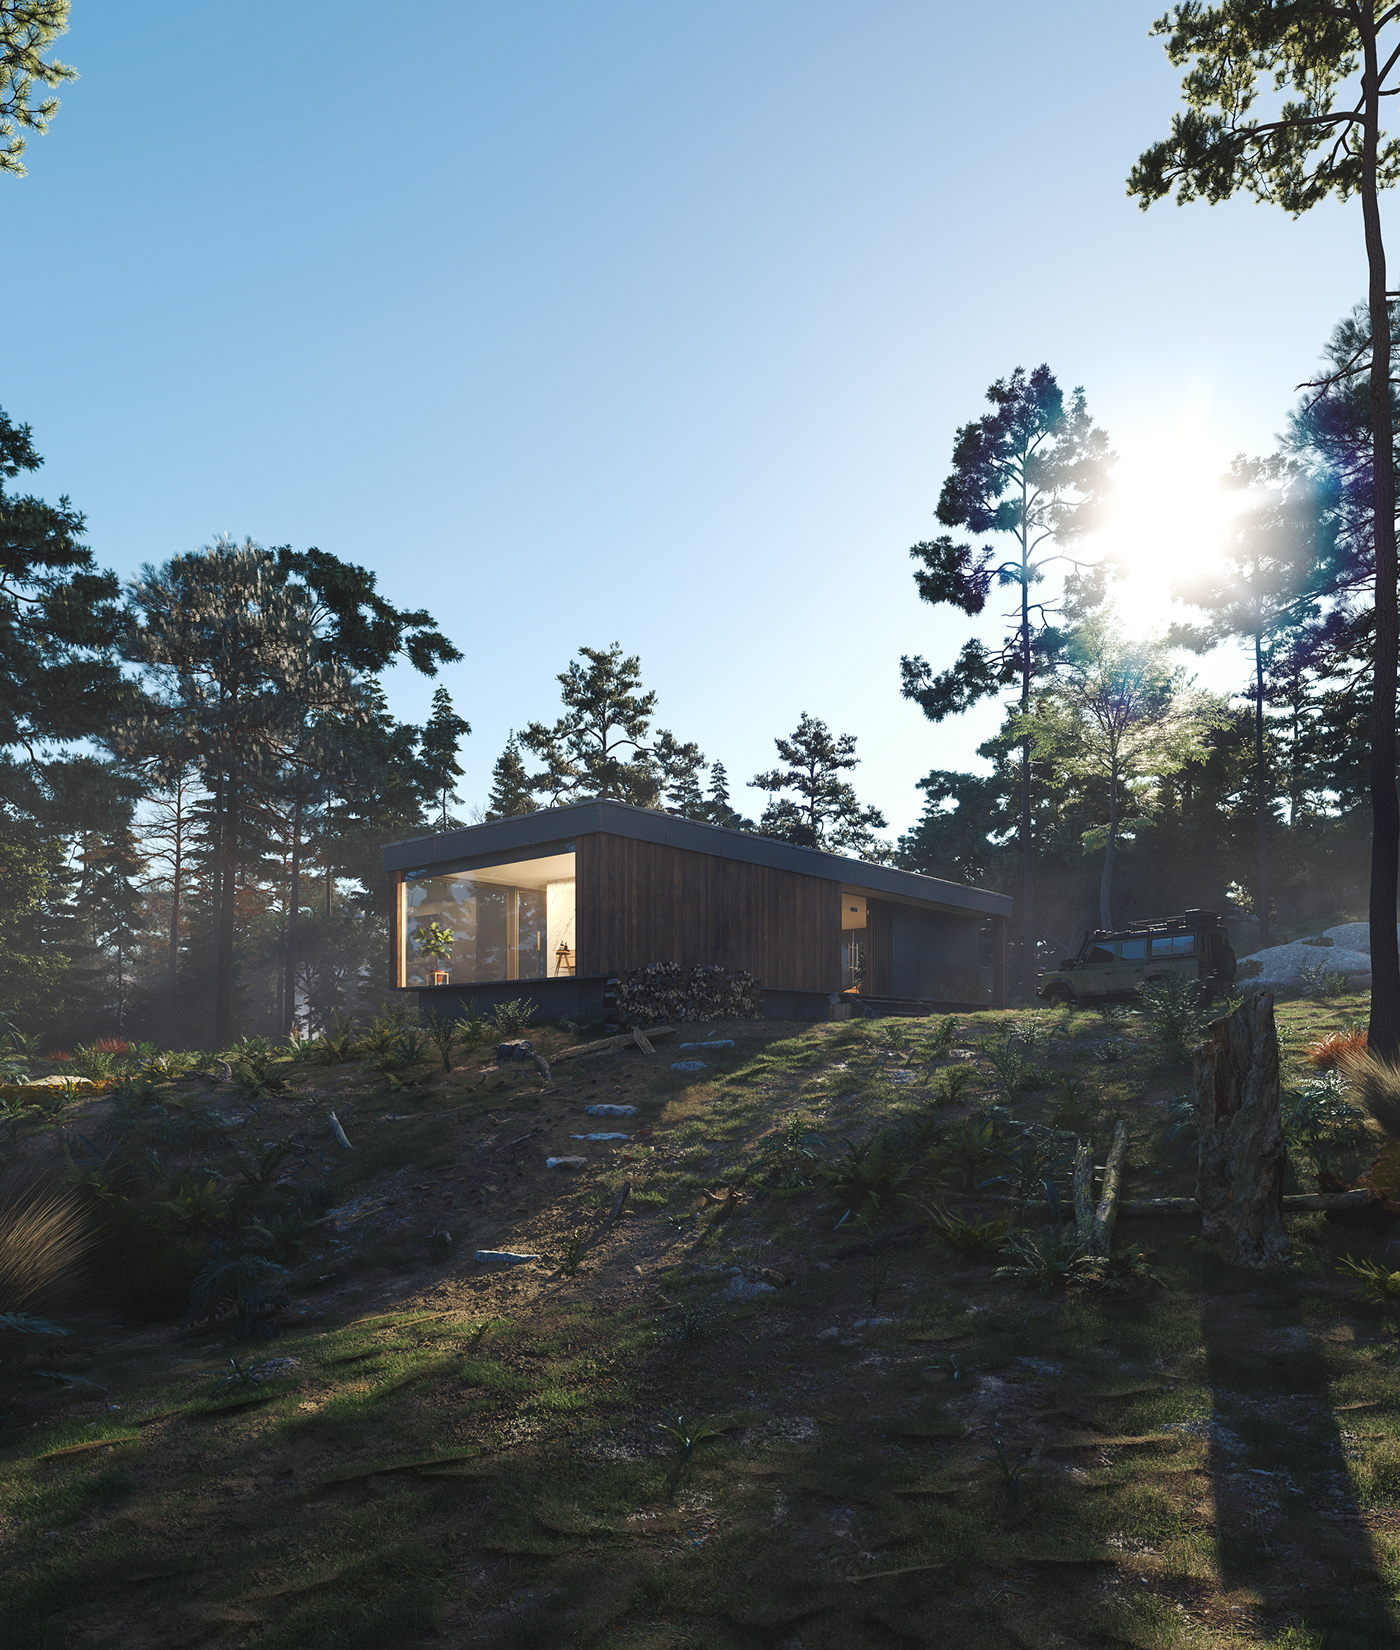 3D visualization CGI vray rendering 3dsmax Archecture exterior photorealistic MegaScans